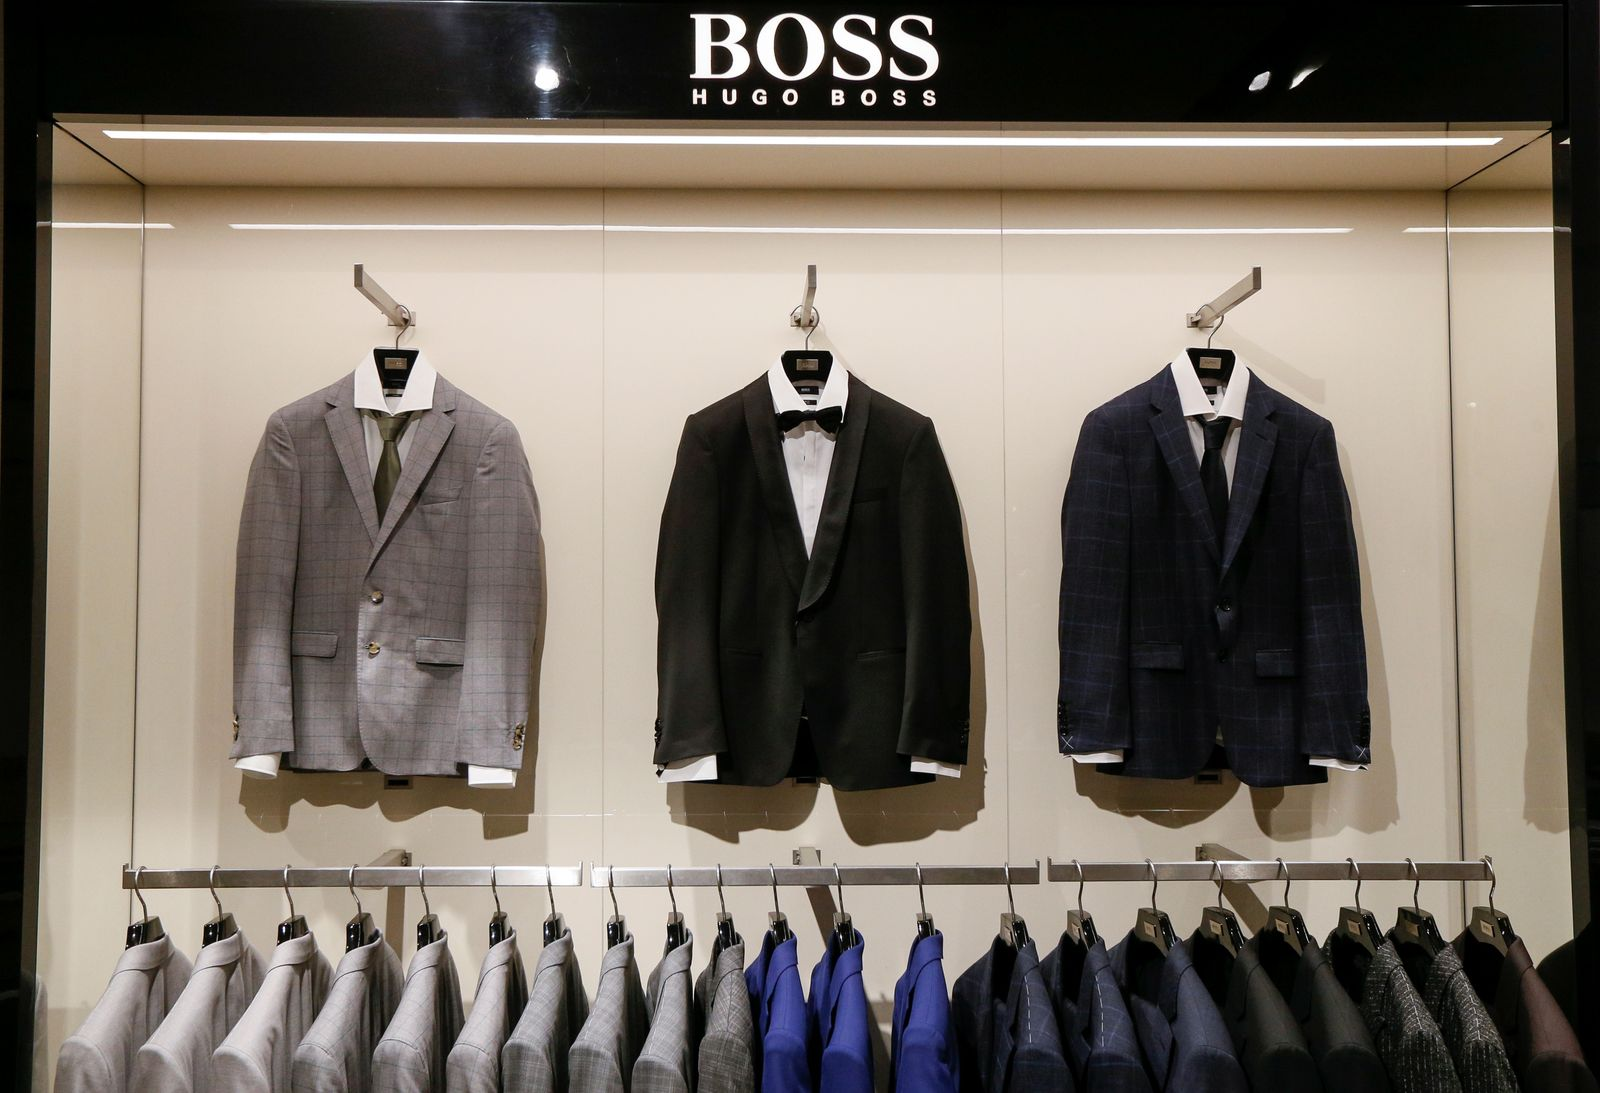 Hugo Boss / Schaufenster